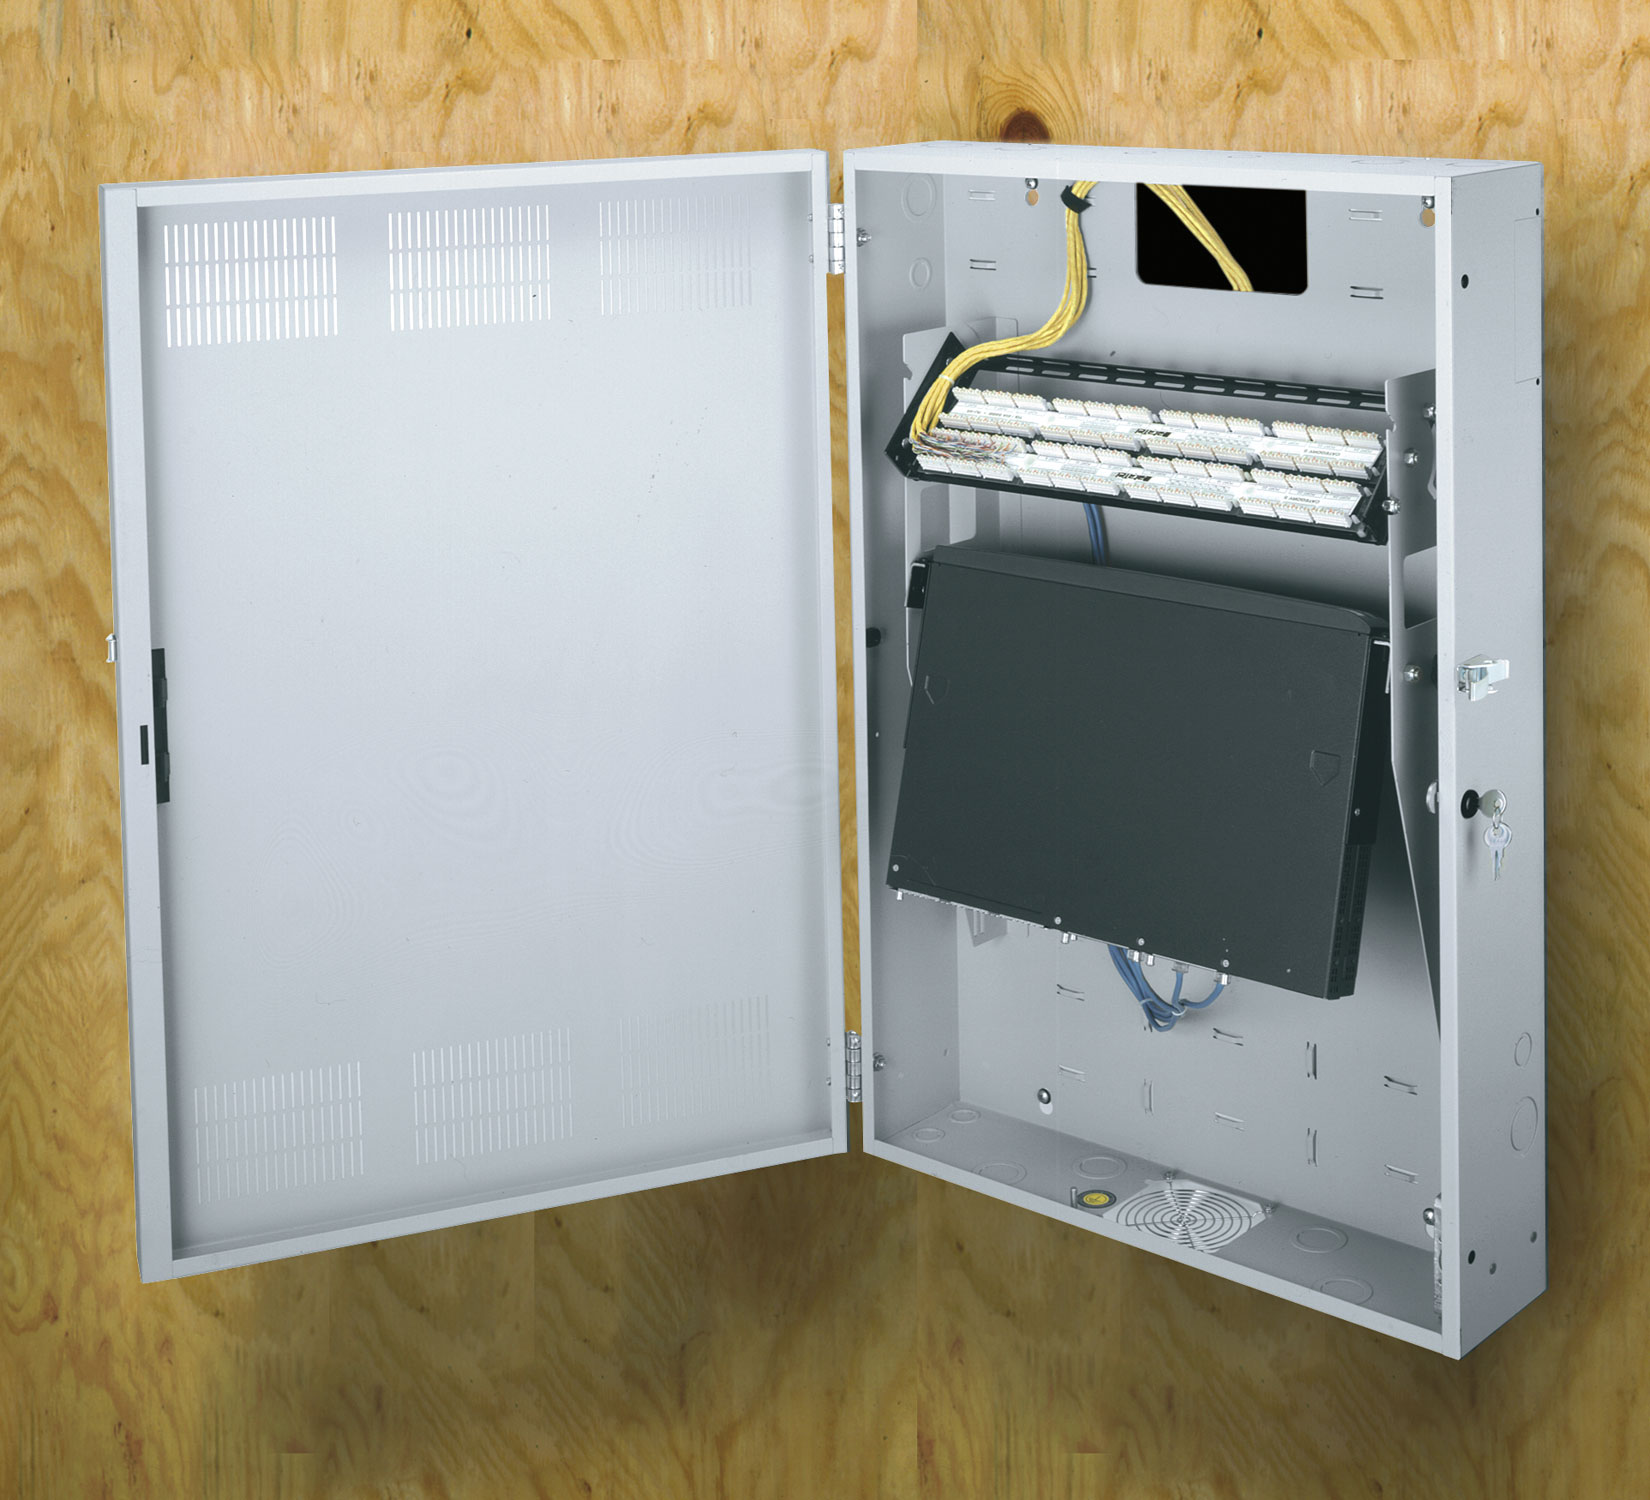 Hdr 4 Low Profile Wall Mount Horizontal Equipment